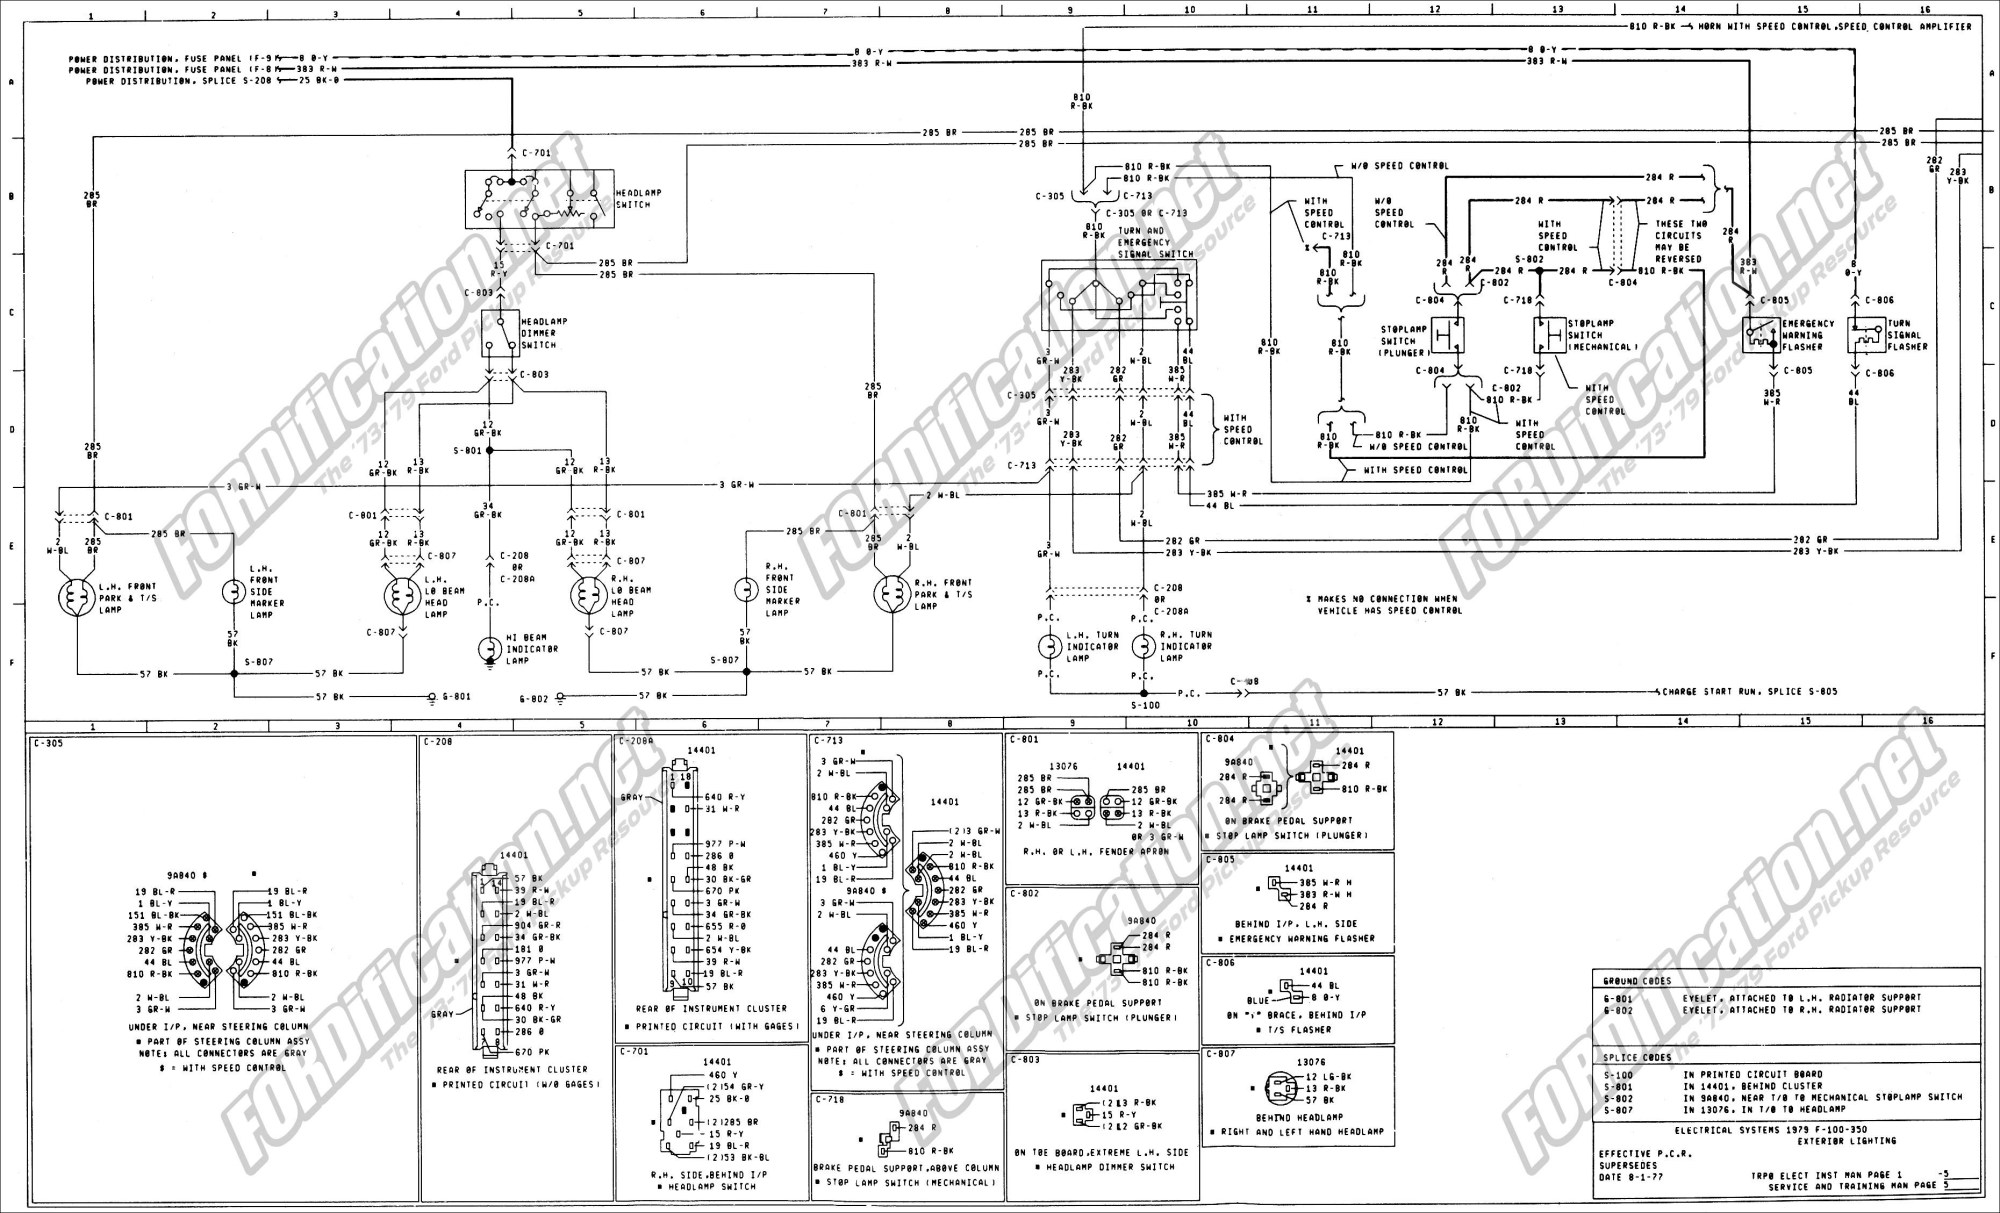 hight resolution of 1979 ford f150 engine diagram wiring diagram expert 1977 ford f150 starter solenoid wiring diagram 1977 f150 wiring diagram